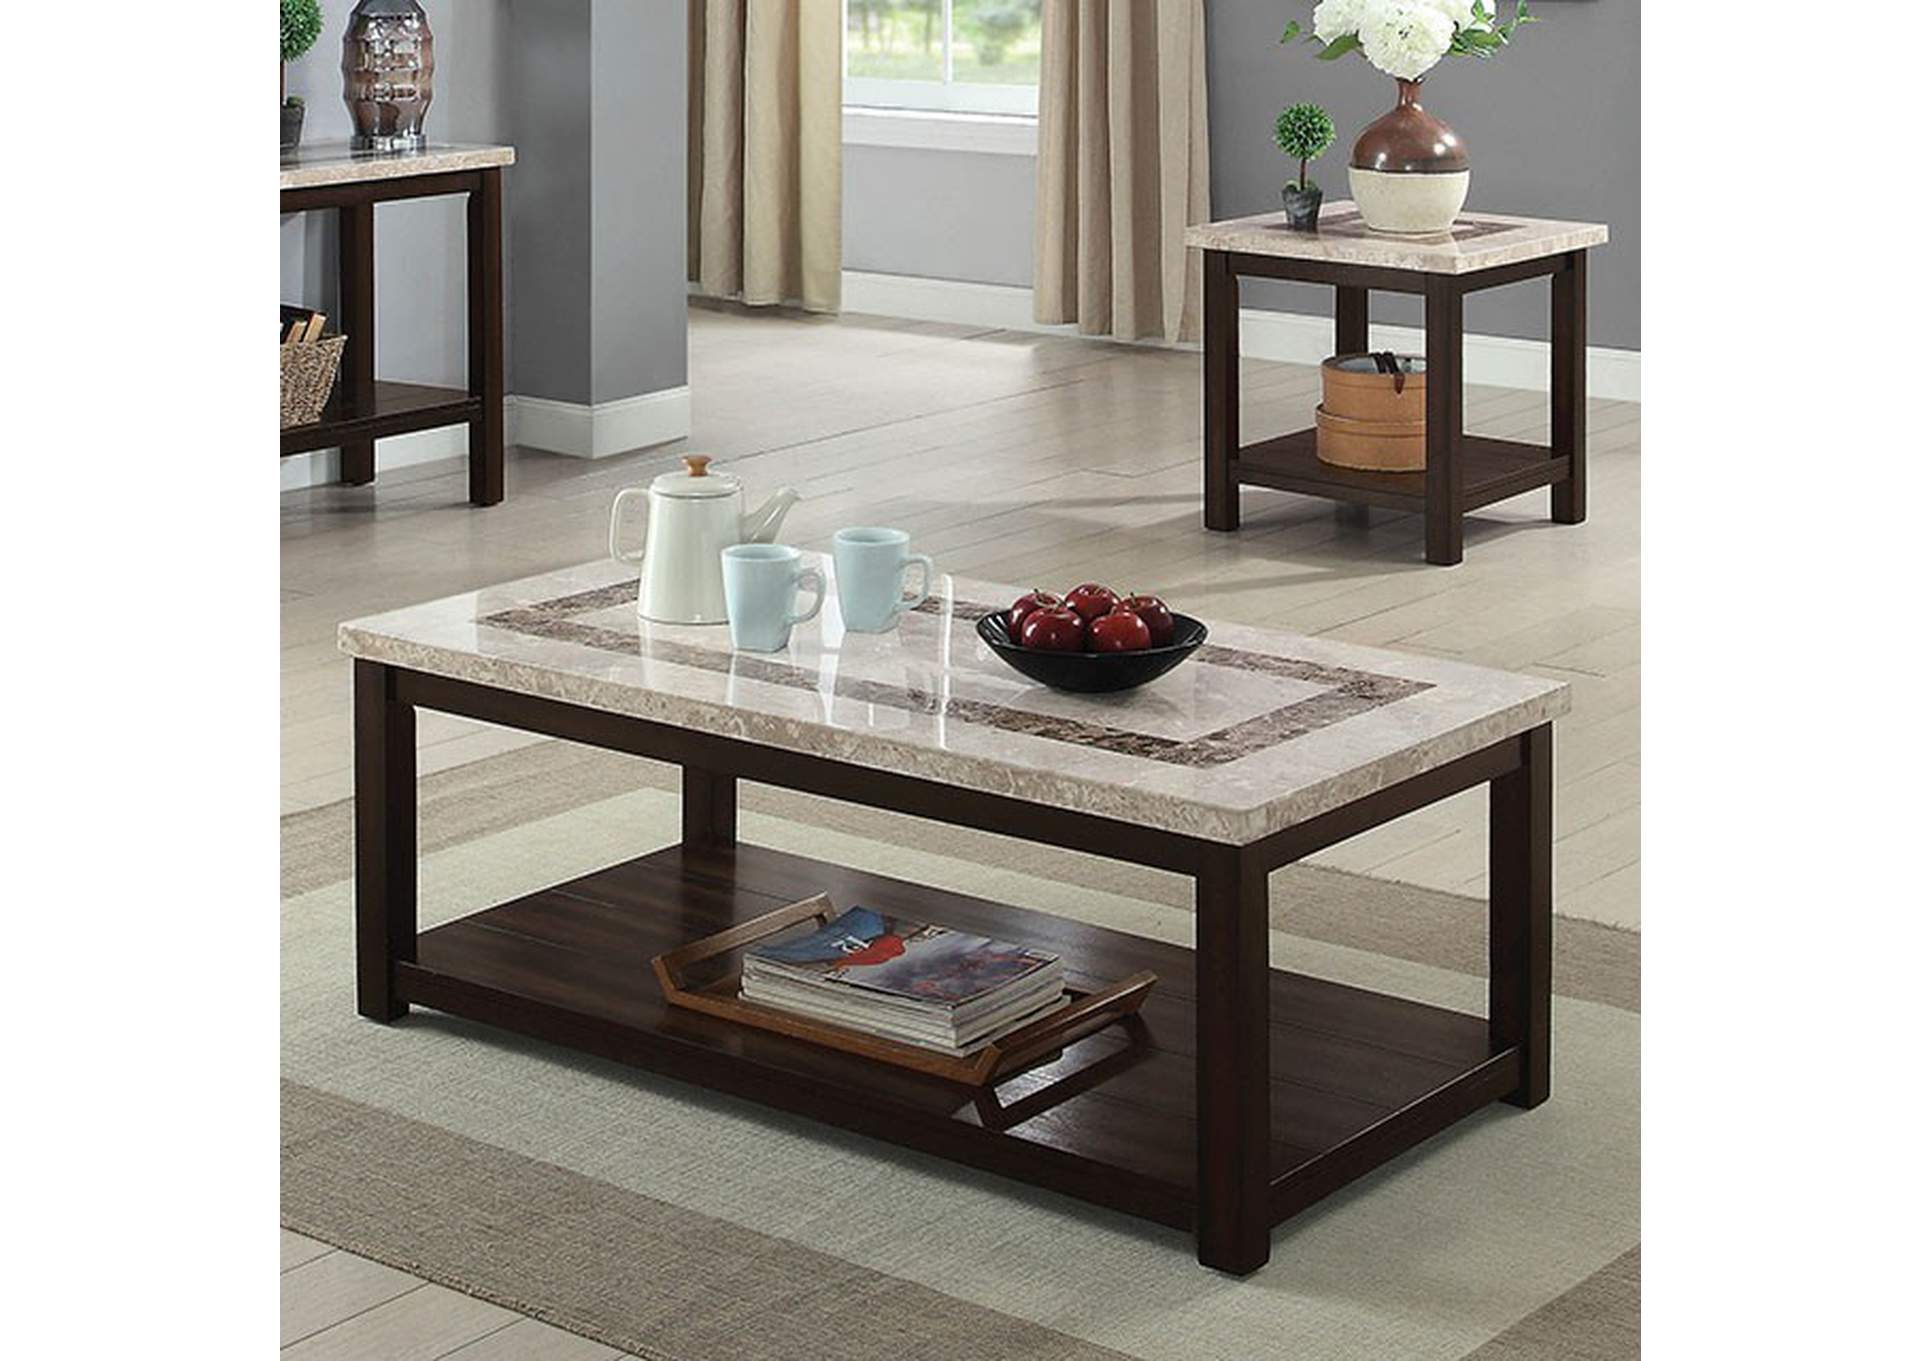 Rosetta Coffee Table,Furniture of America